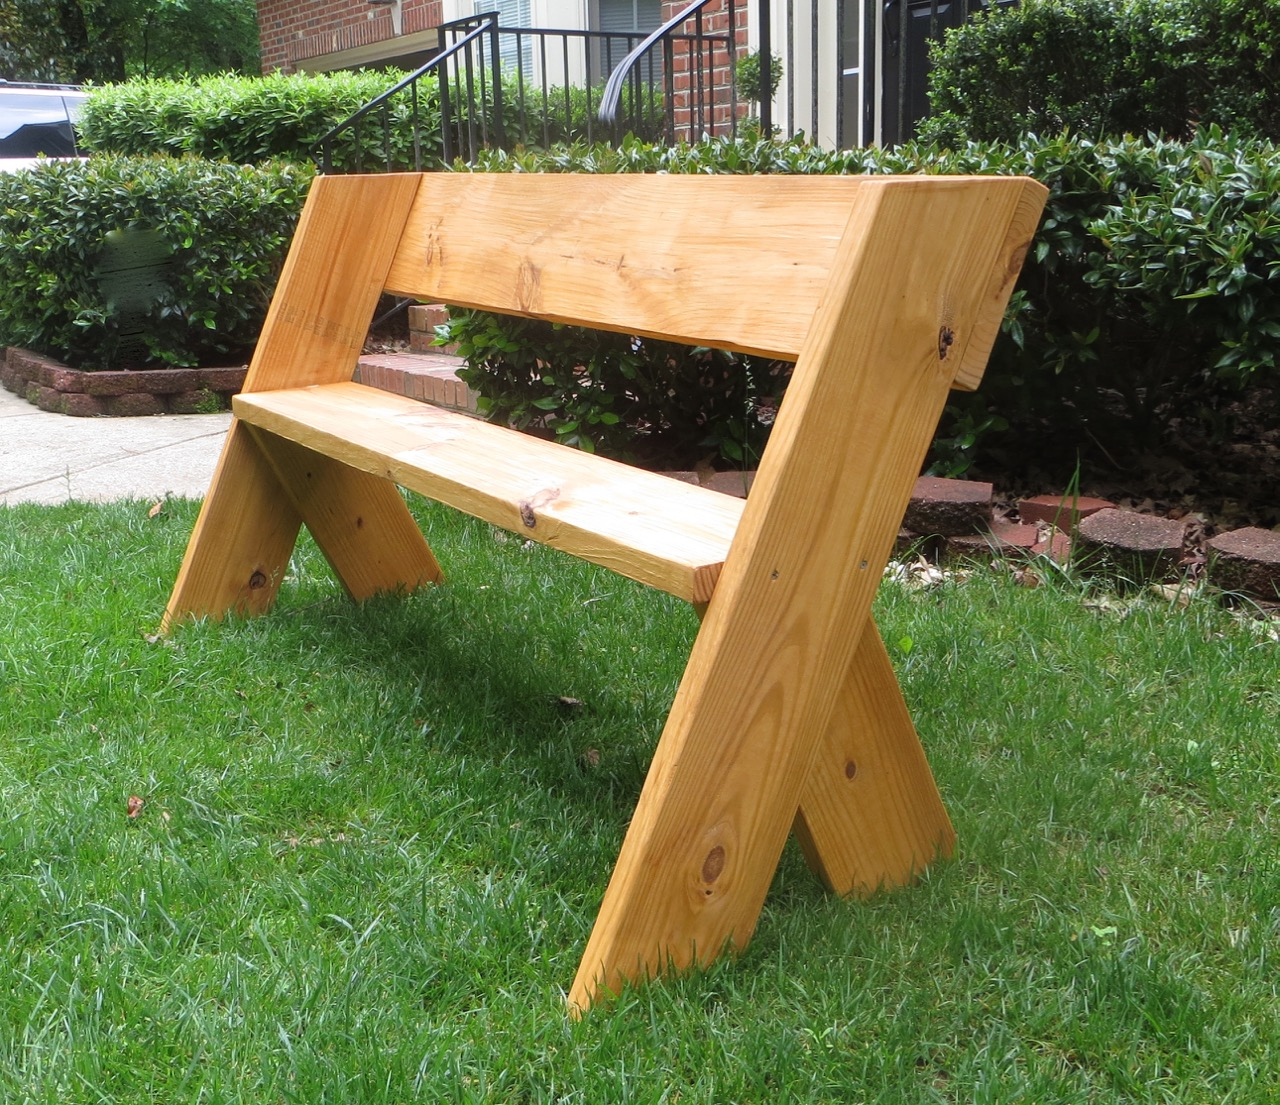 Outdoor Bench Ideas Part - 17: DIY Tutorial - $16 Simple Outdoor Wood Bench